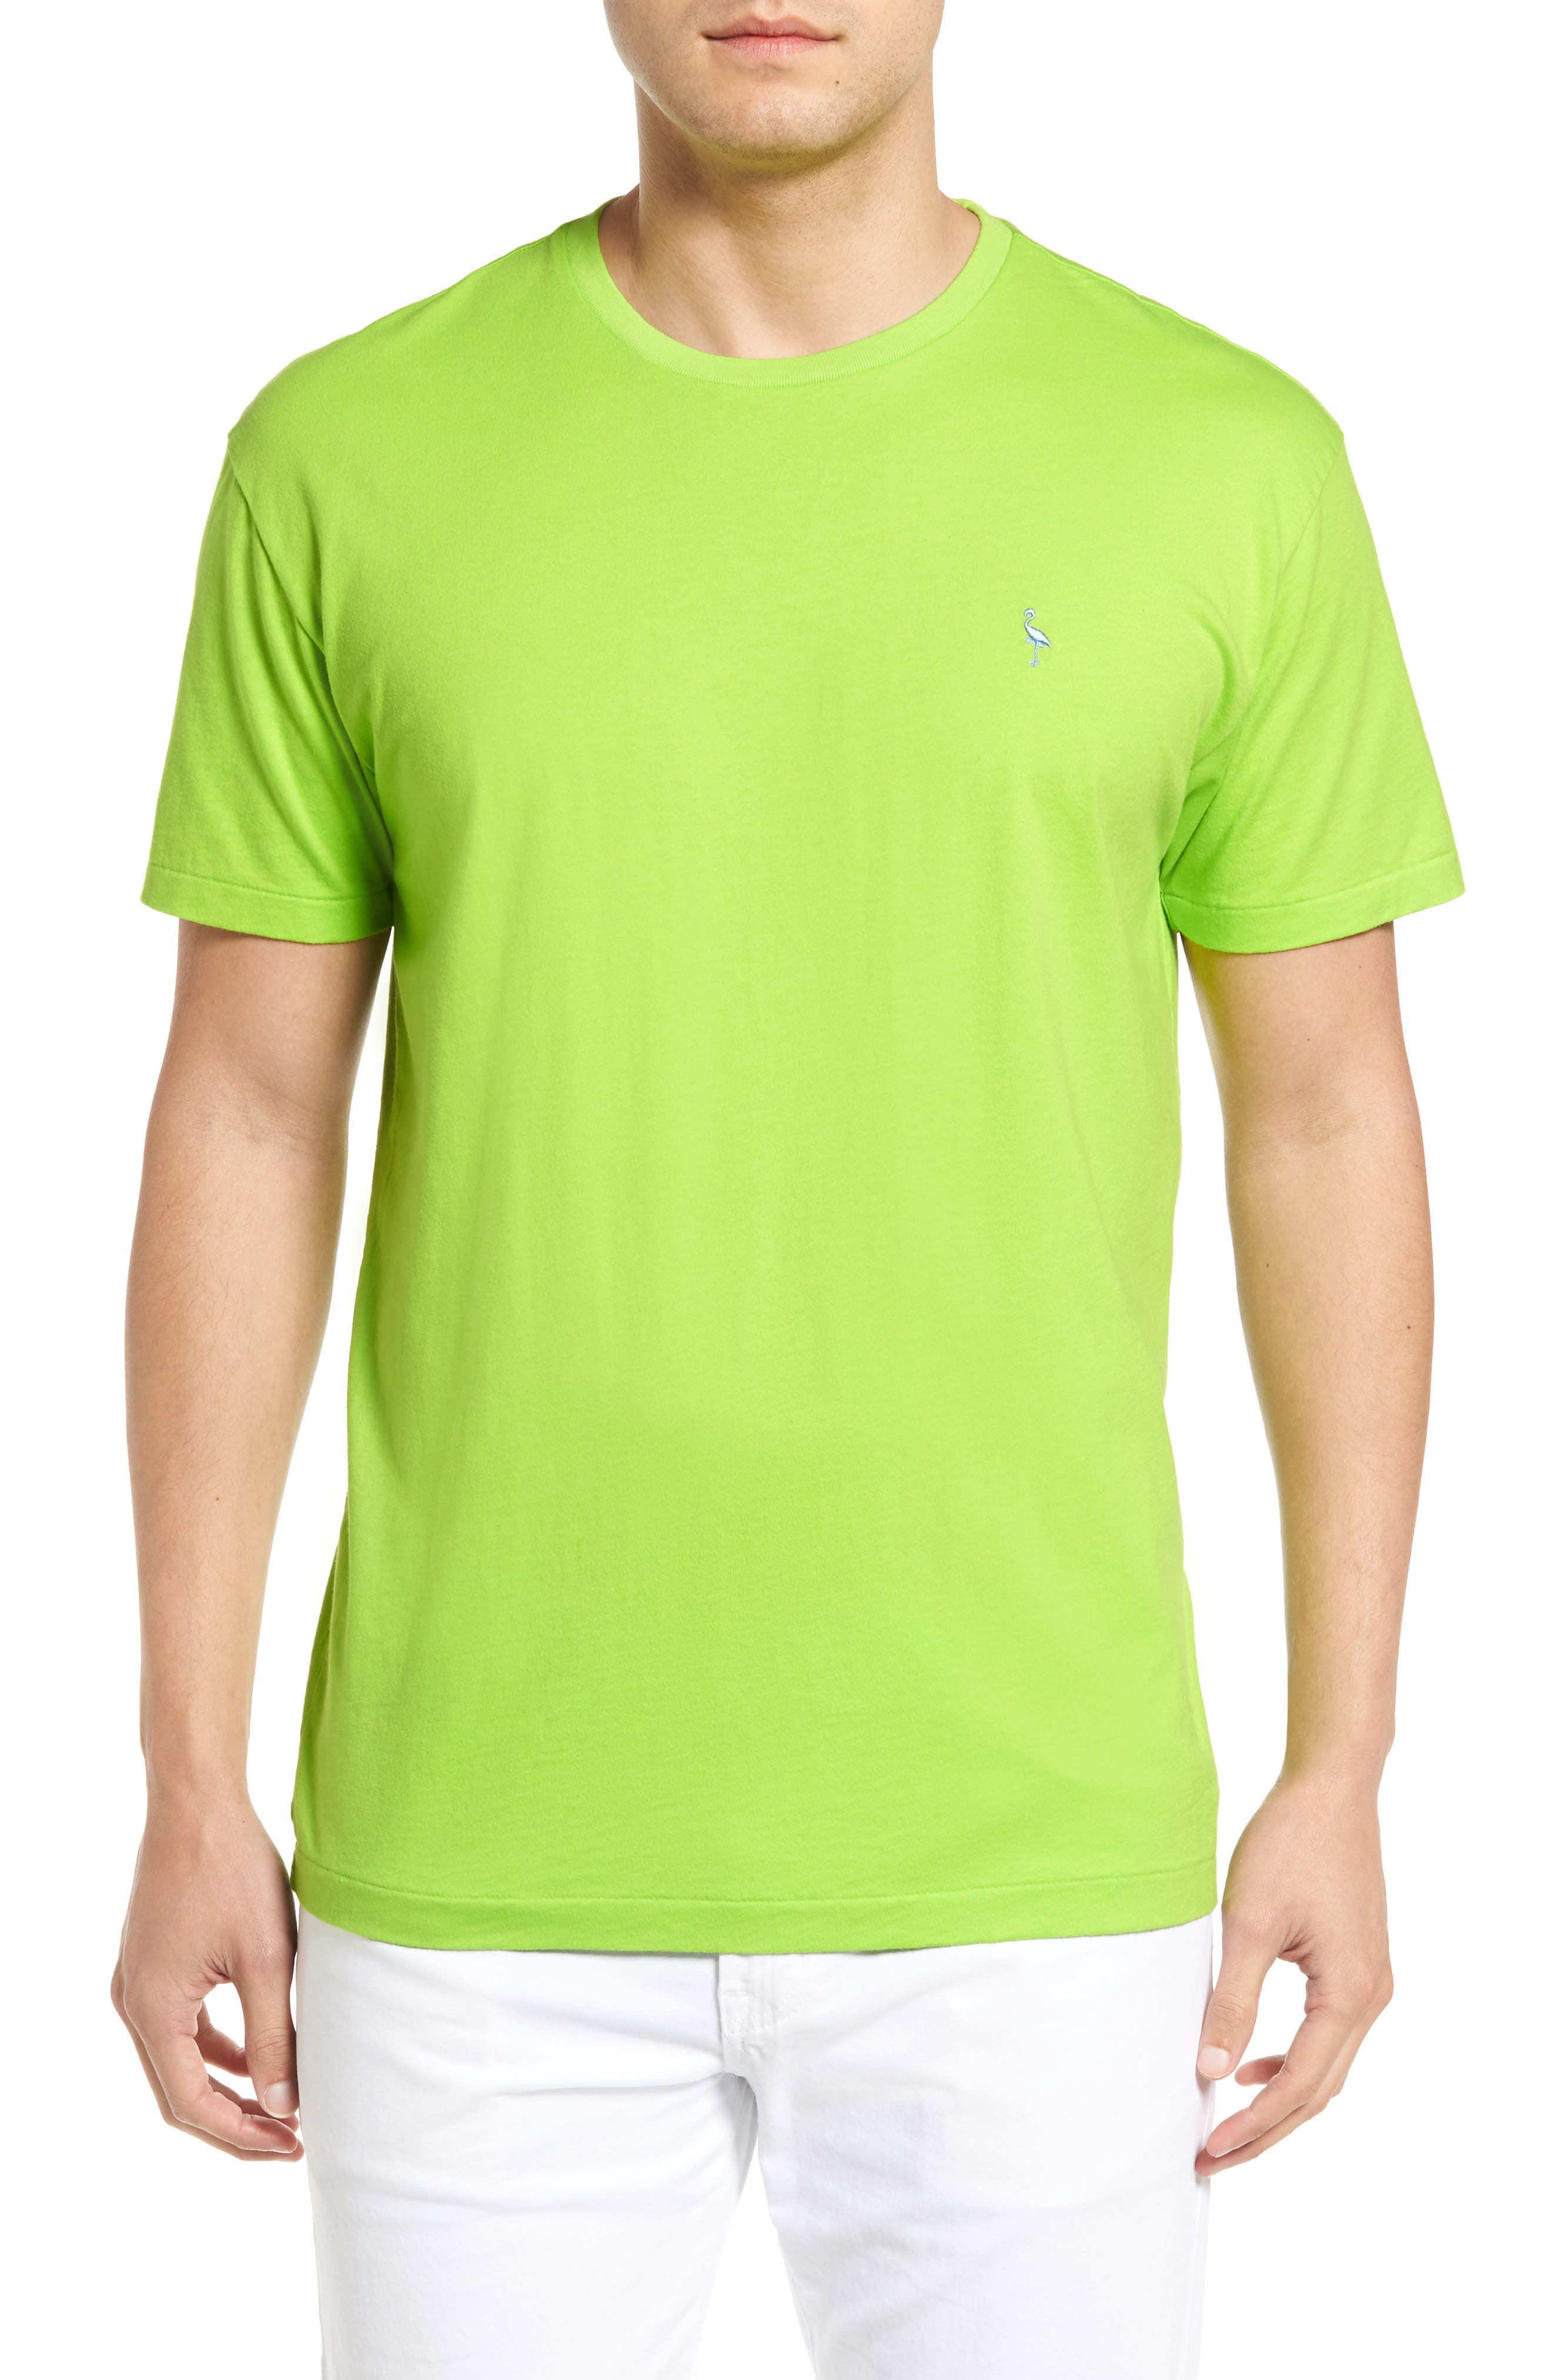 TailorByrd Markham Square T-Shirt (Big)